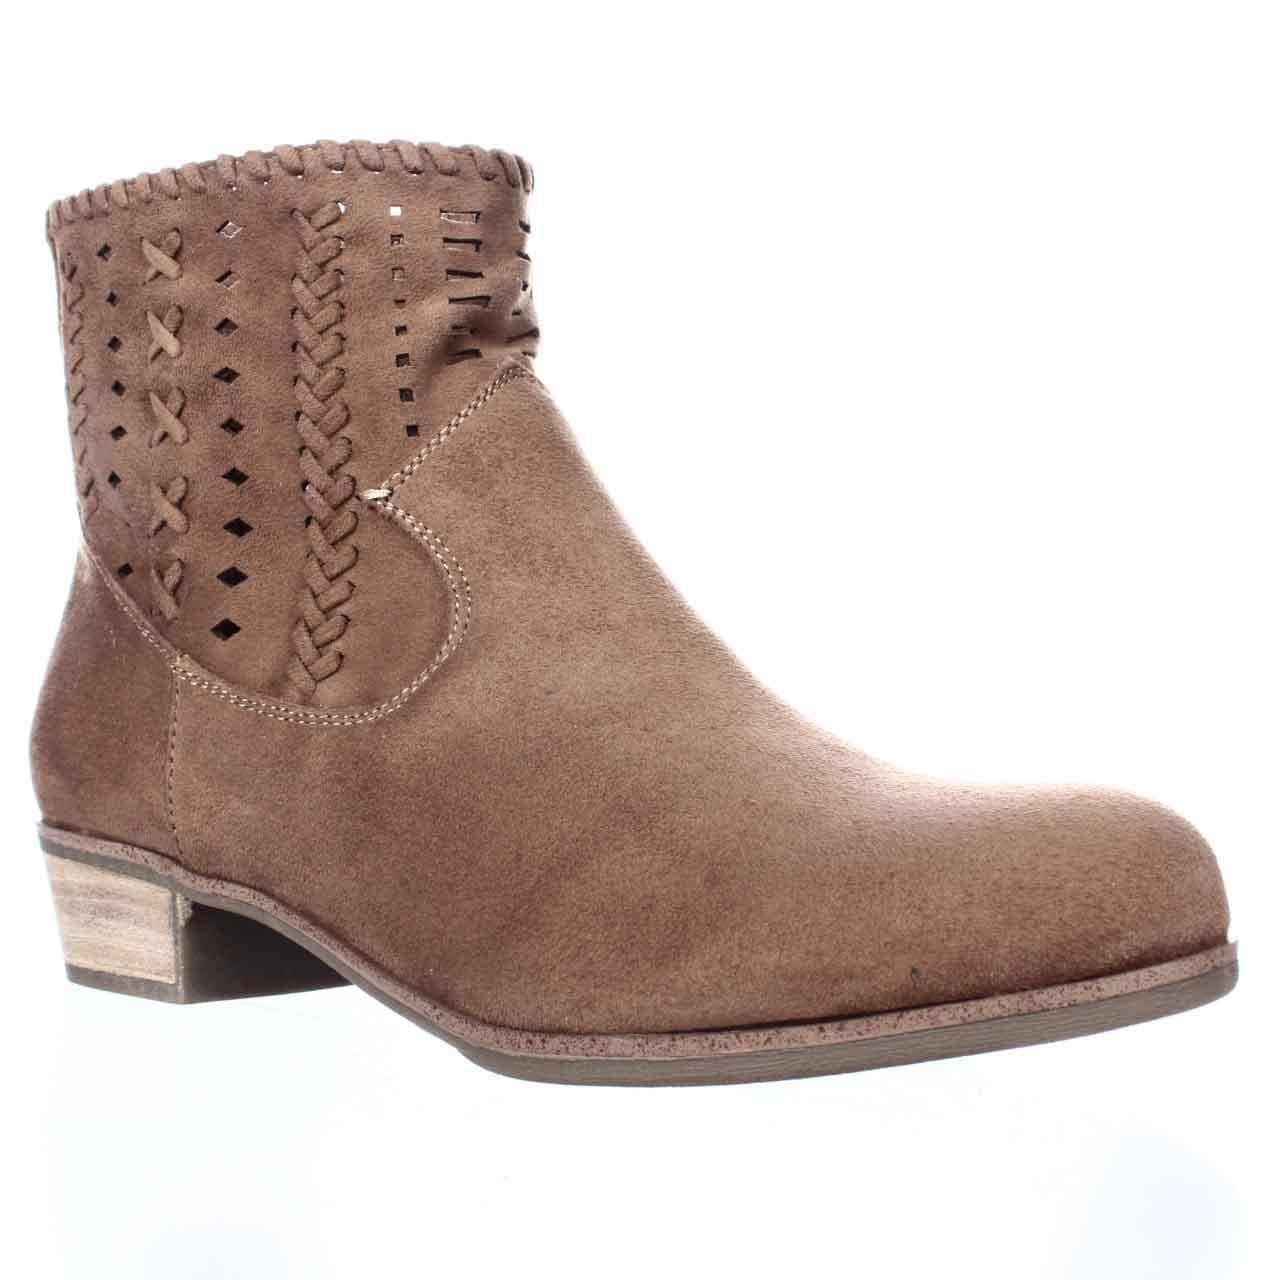 Indigo Rd. Womens CAM Closed Toe Ankle Fashion Boots